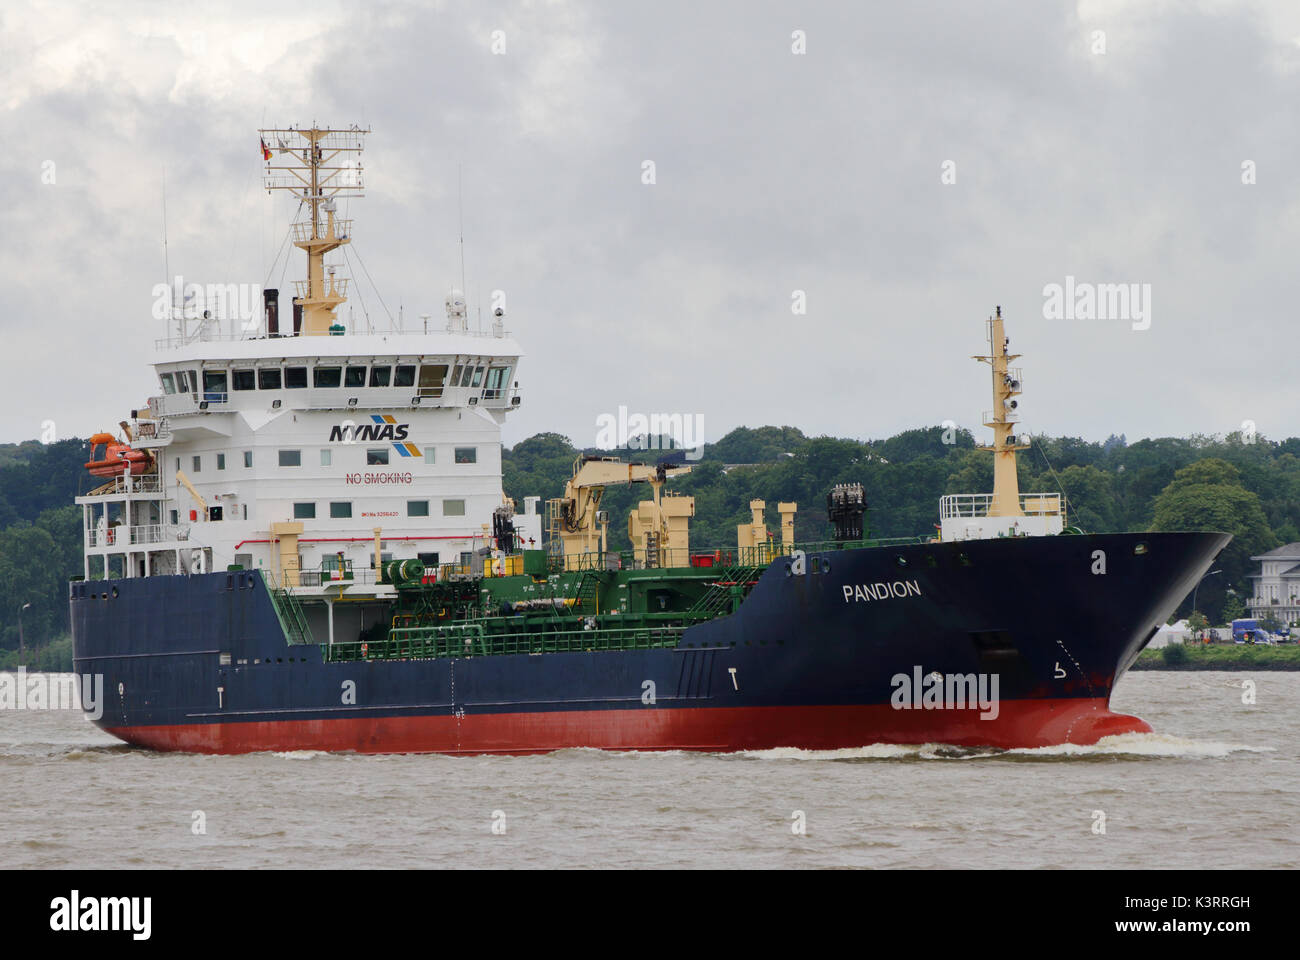 The tanker Pandion enters the Port of Hamburg. - Stock Image